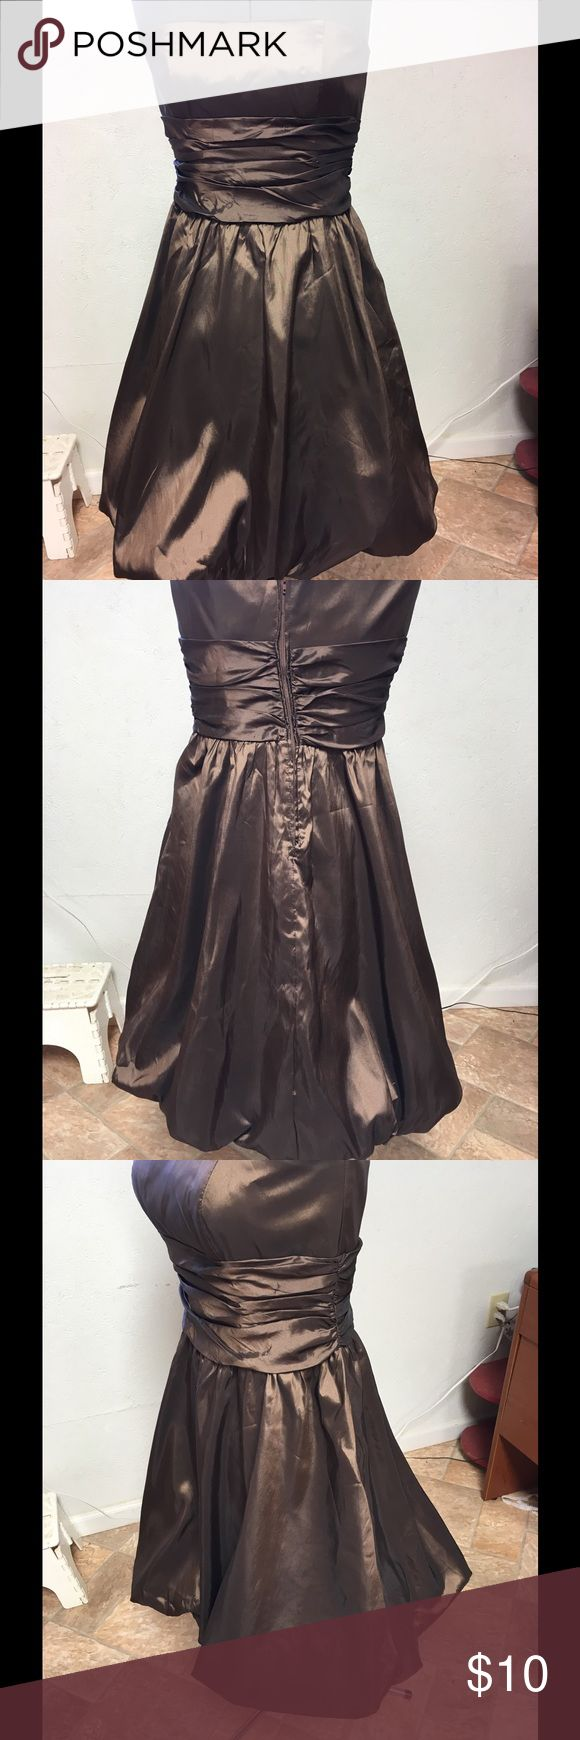 Formal dress from David's Bridal Shop Size 10, Brown, short. Worn once. Has a water mark where punch was spilled on it. Last two pics show the spill. David's Bridal Dresses Strapless